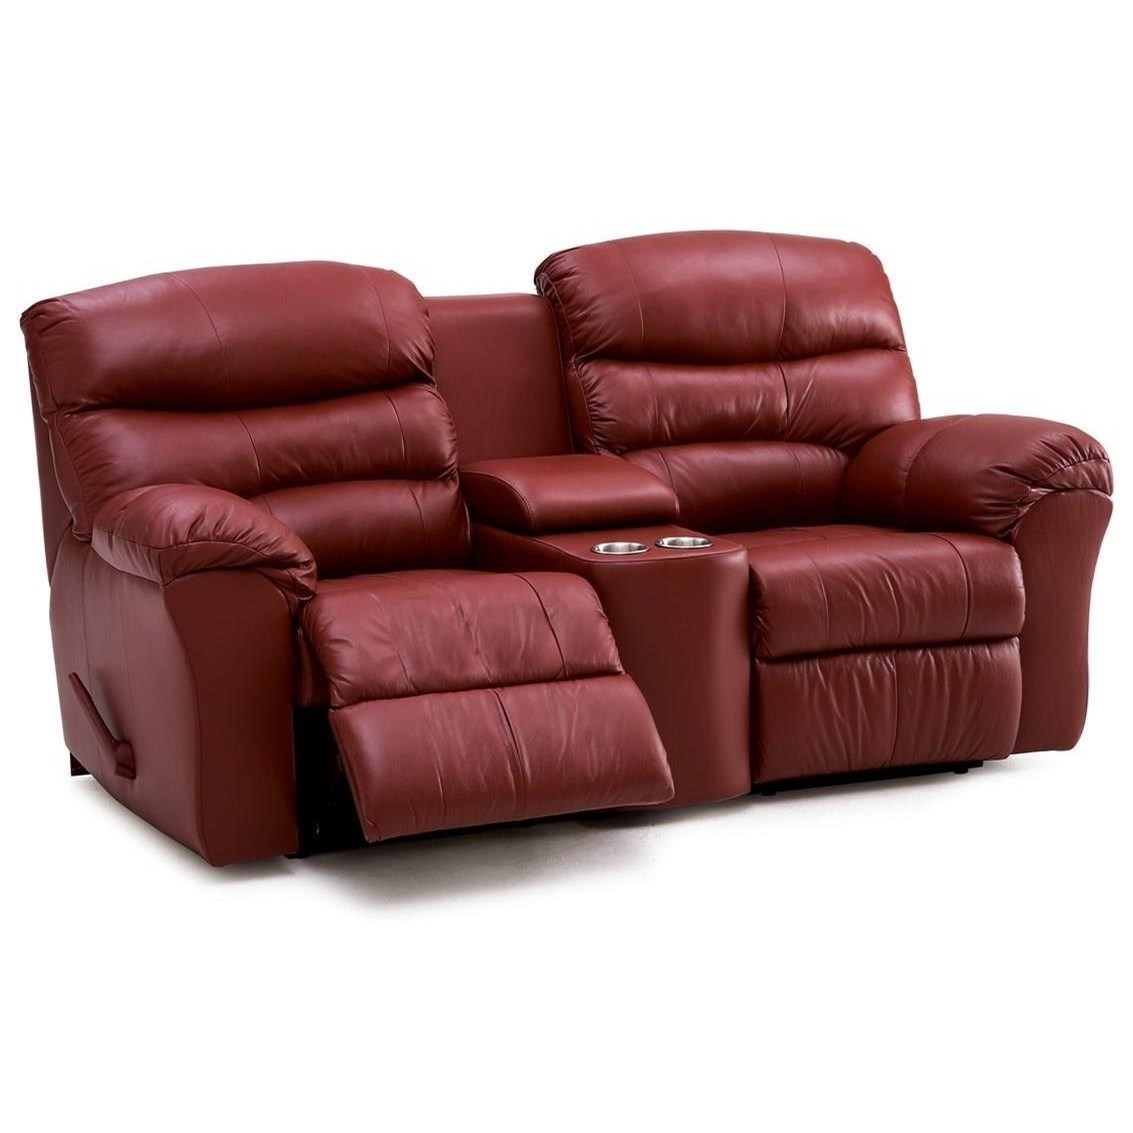 Super Durant Casual Manual Reclining Loveseat With Console And Cupholders By Palliser At Dunk Bright Furniture Caraccident5 Cool Chair Designs And Ideas Caraccident5Info